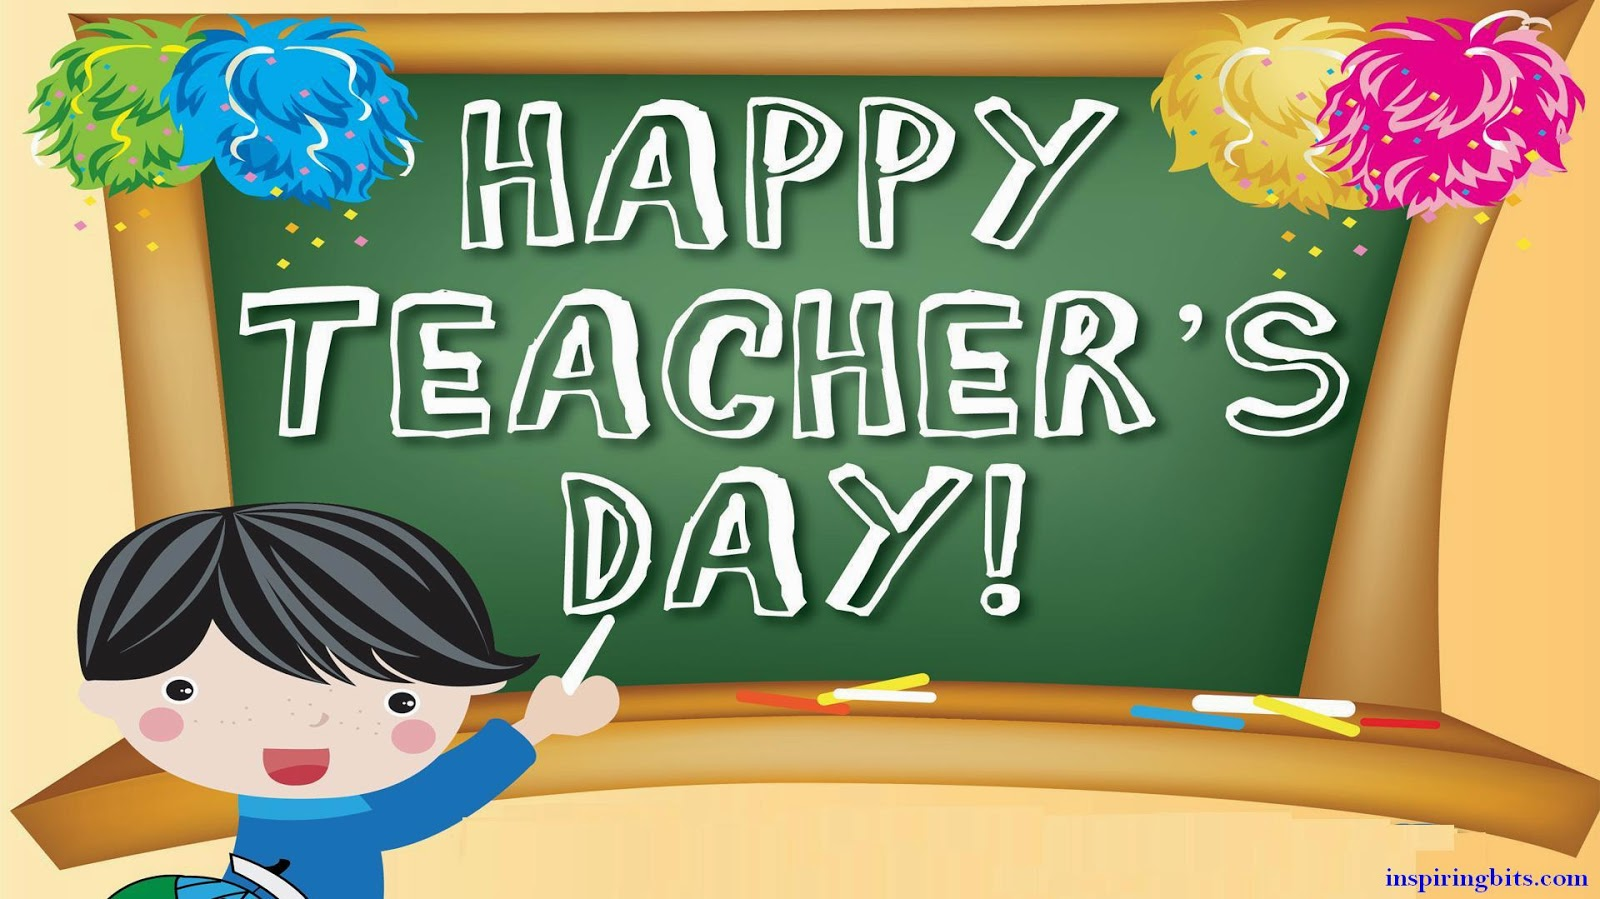 Teachers day Greetings wallpapers